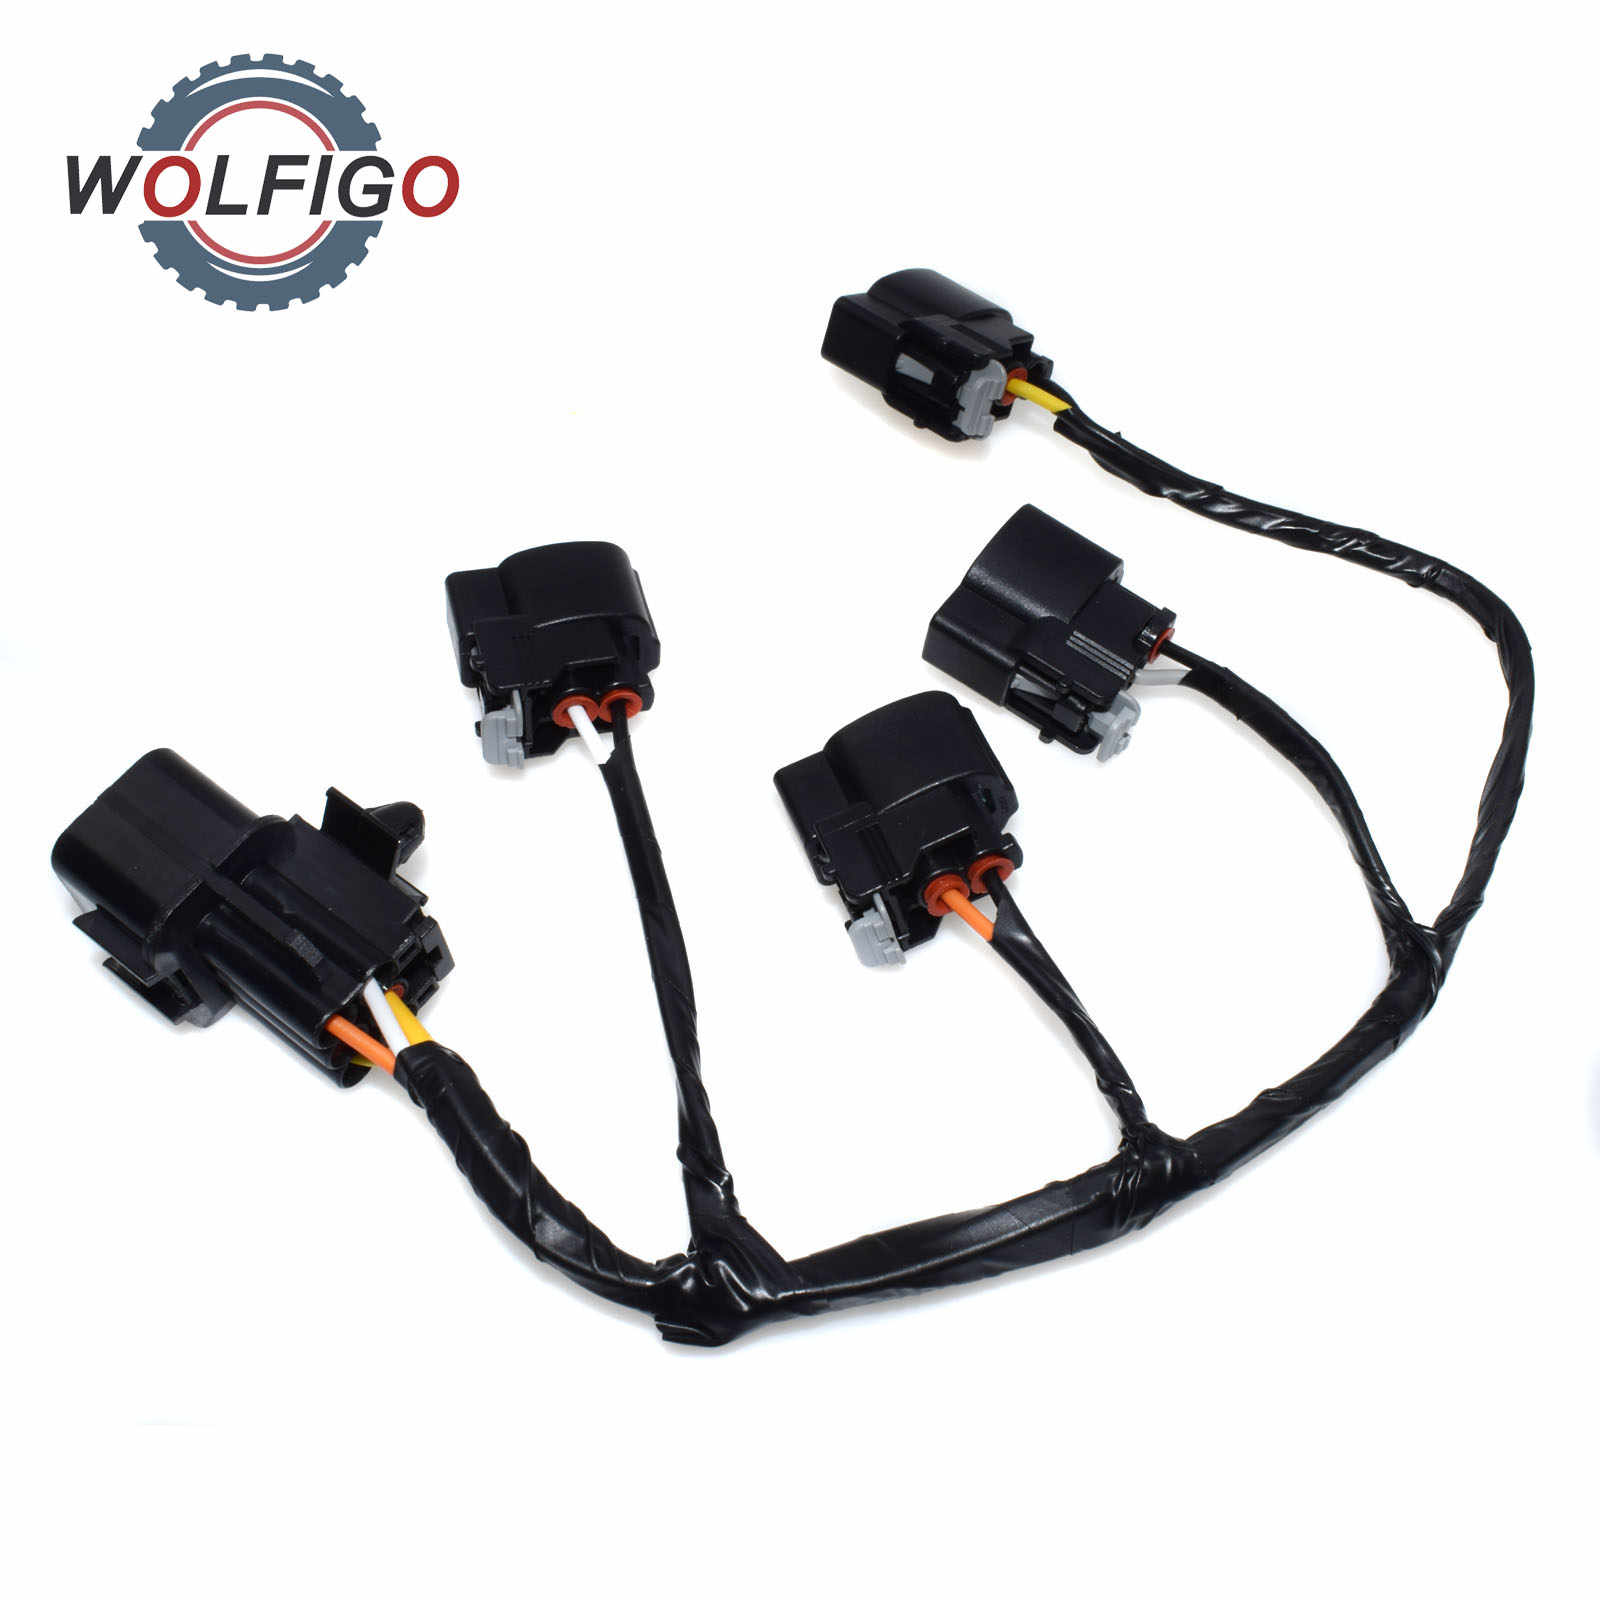 small resolution of hyundai veloster wiring harness wiring diagram view hyundai veloster wiring diagram detail feedback questions about wolfigo